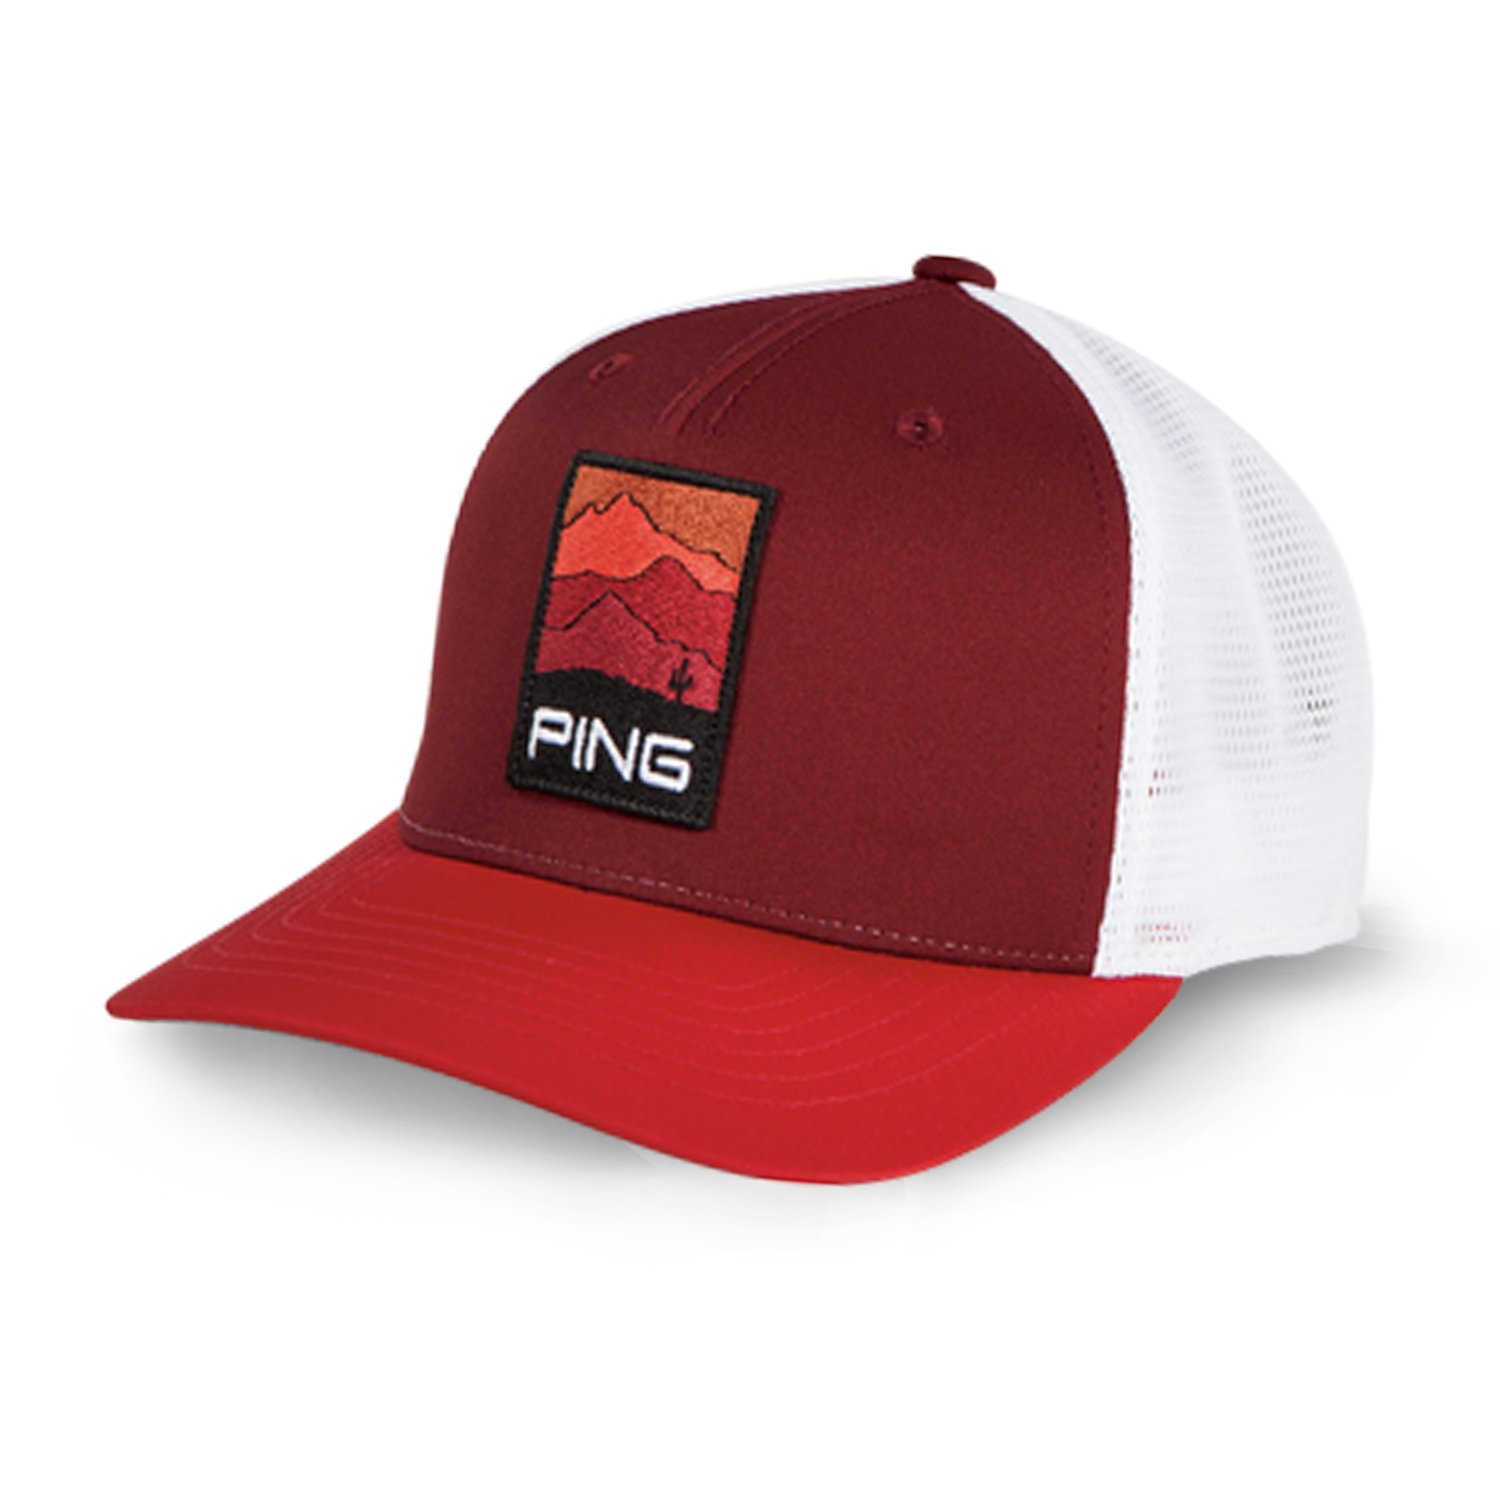 d23a991f162 Amazon.com   Ping Men s Golf Caps   Hats (Fairway Cap